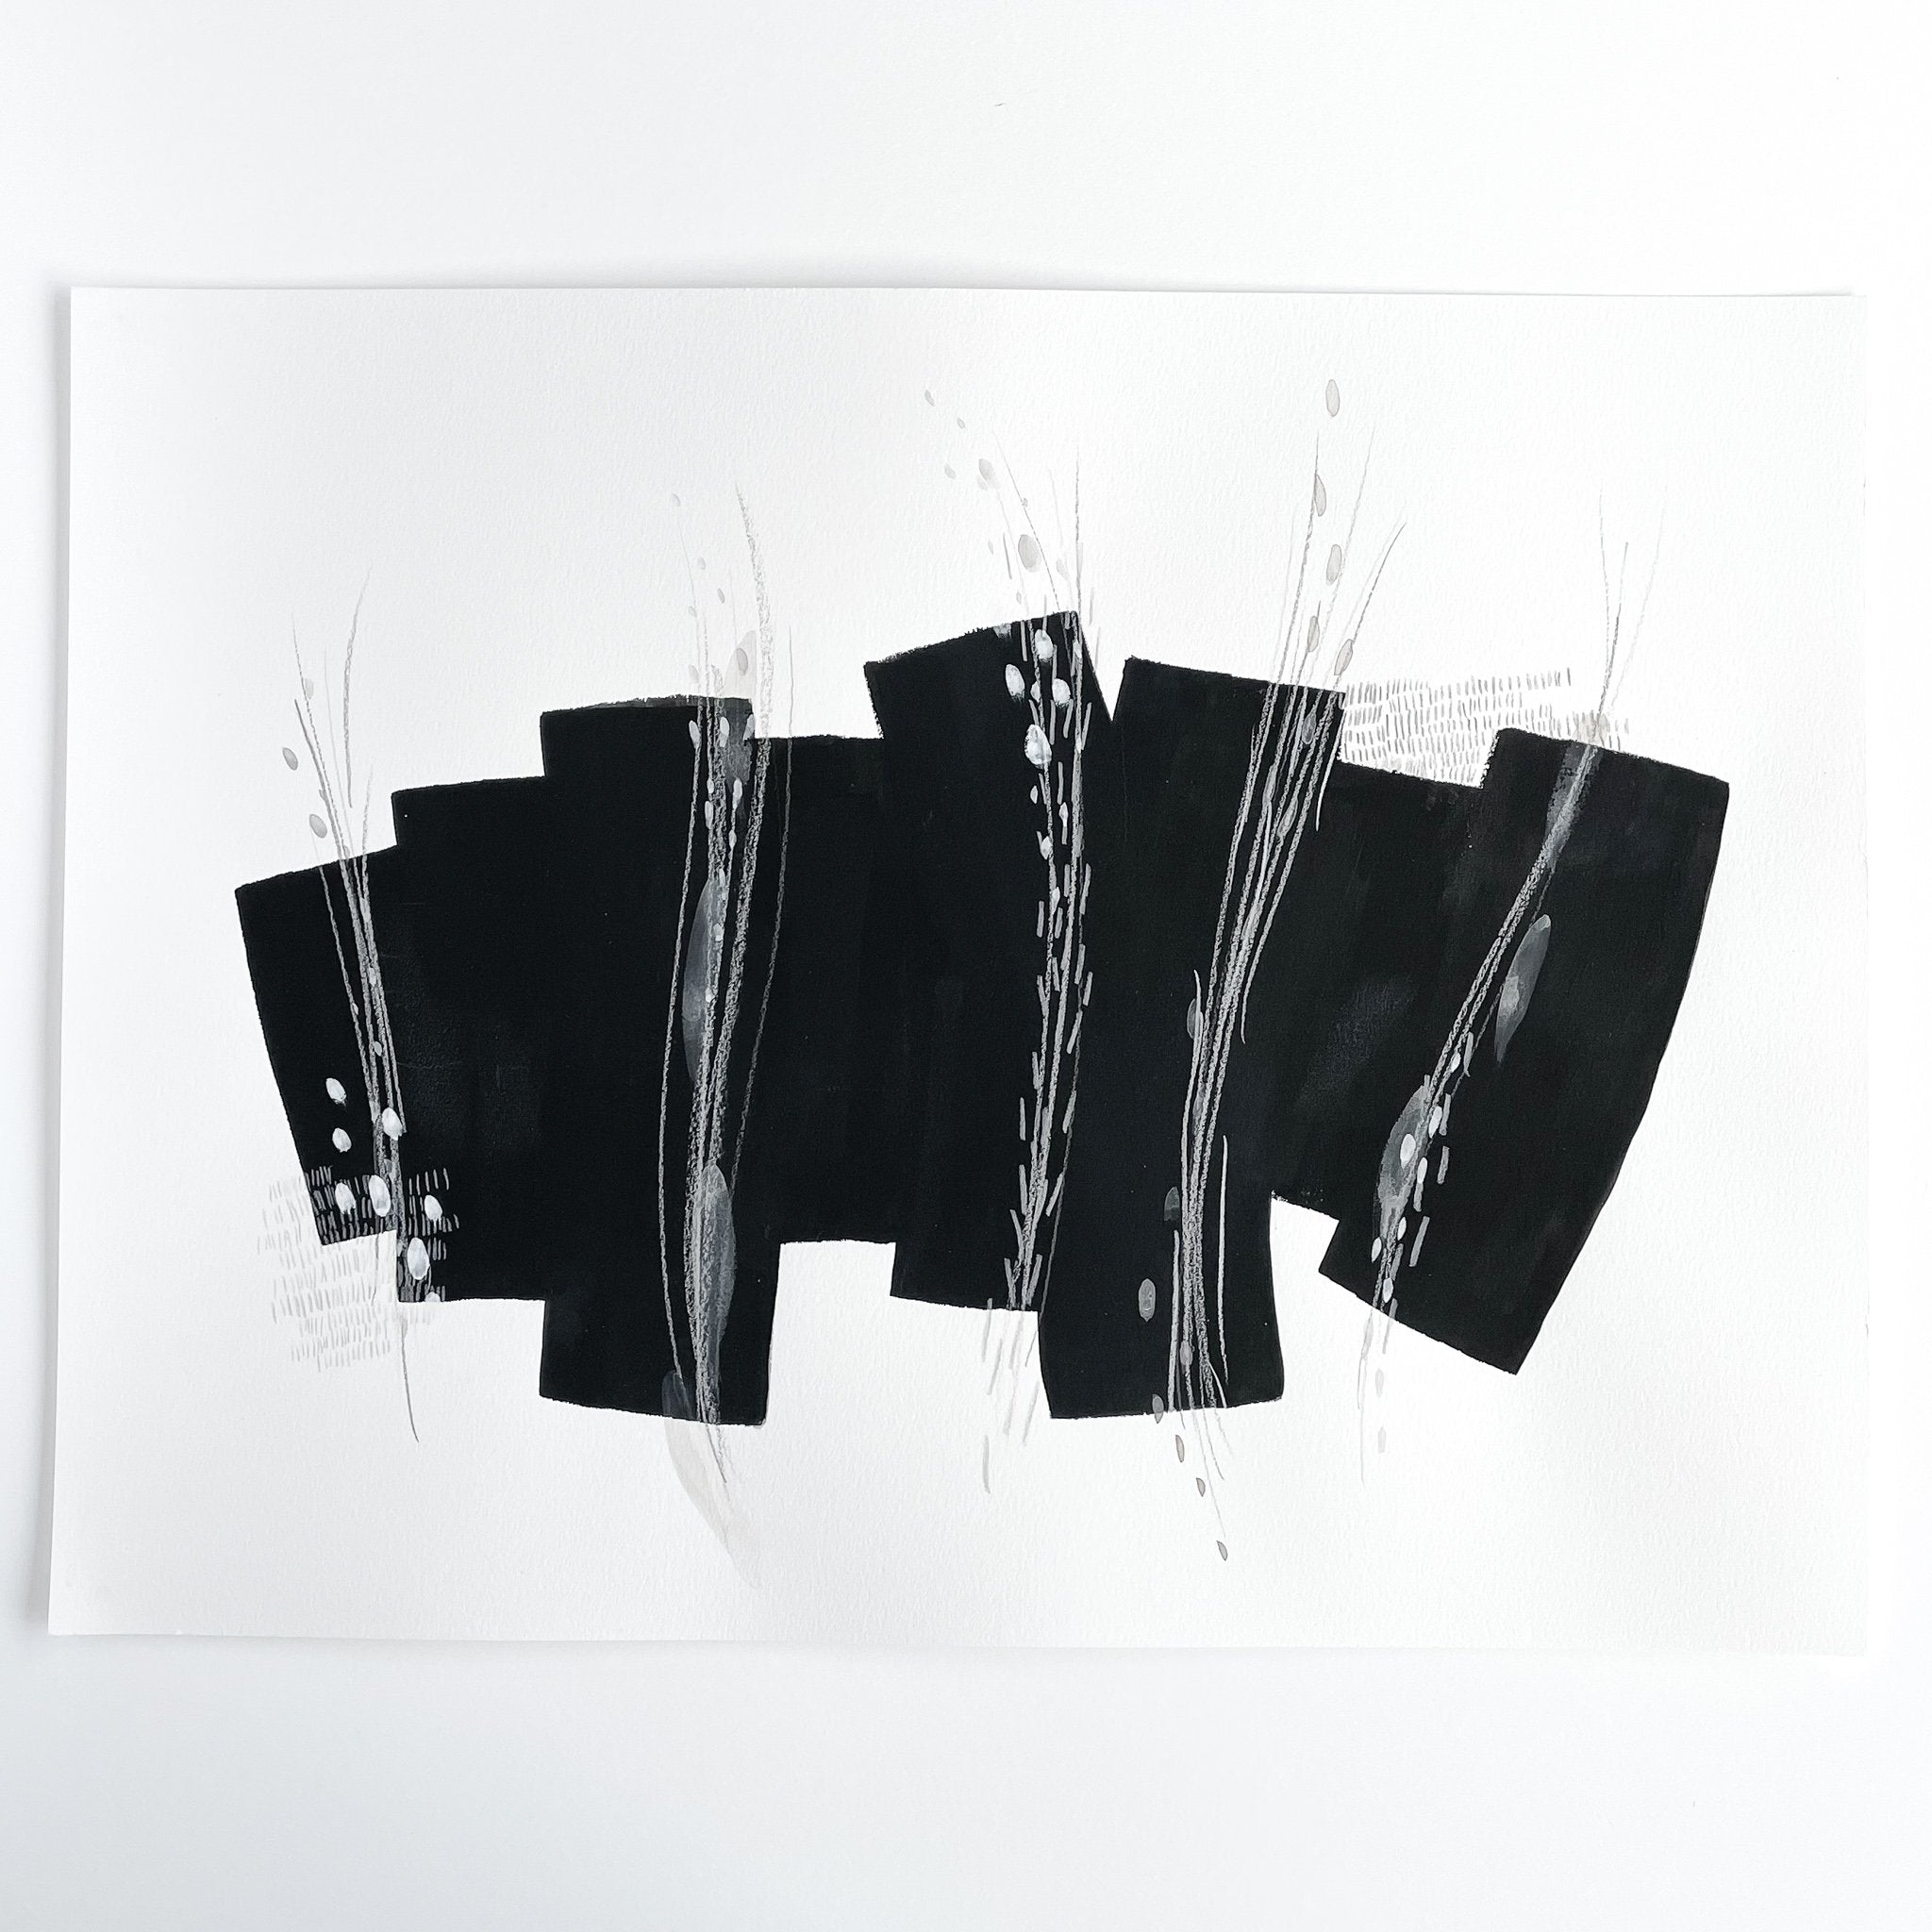 Stay 18 - Neutral, Black and white abstract painting on paper by artist Kait DeWolff. Kaitcreative